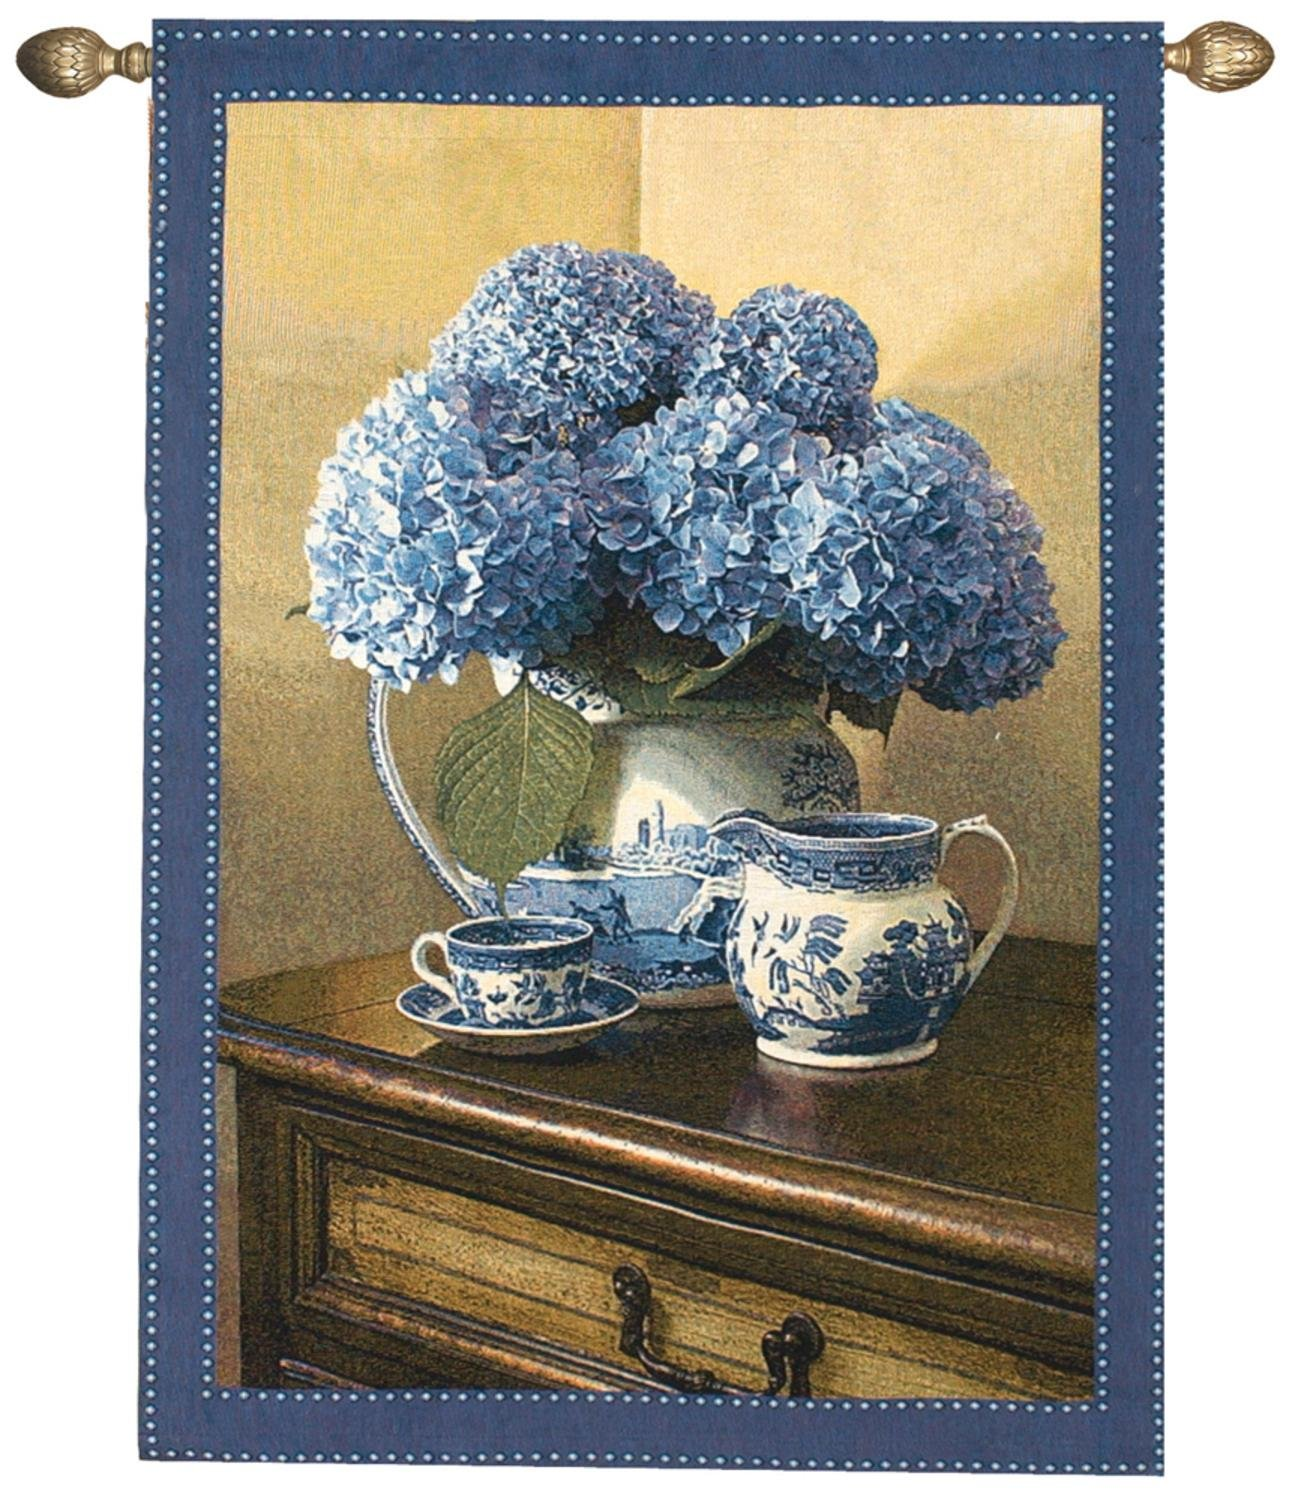 English Blue Willow China and Floral Cotton Wall Art Hanging Tapestry 47'' x 35''